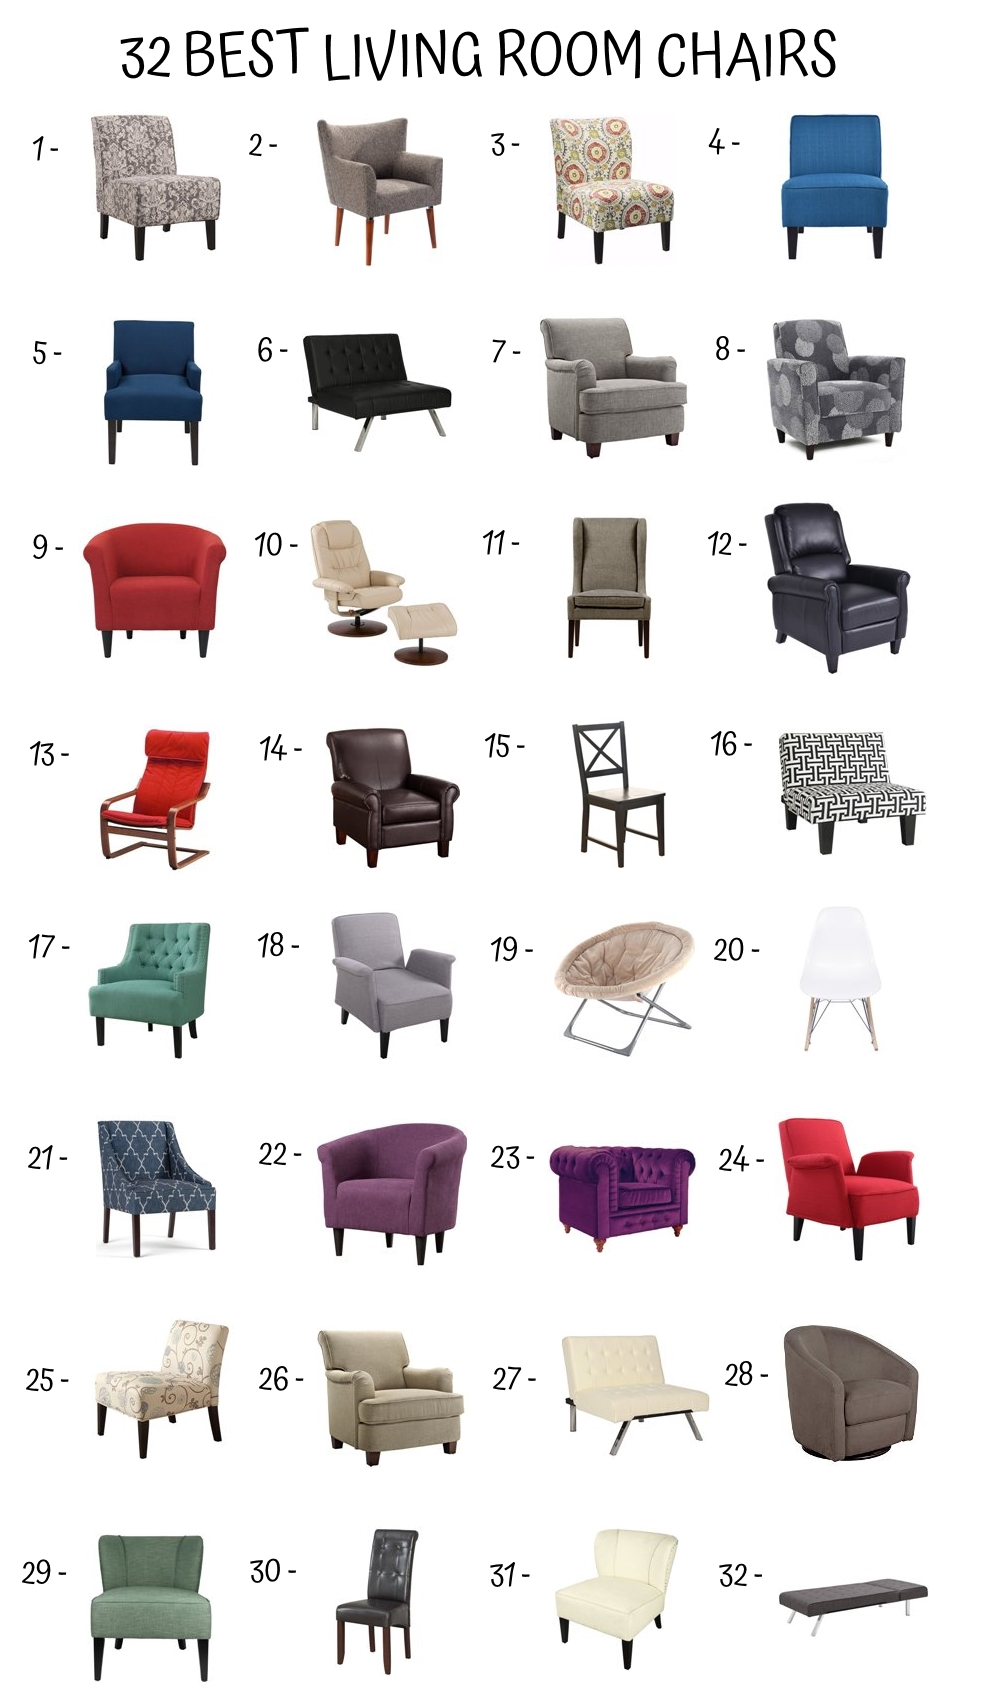 32 Best Living Room Chairs